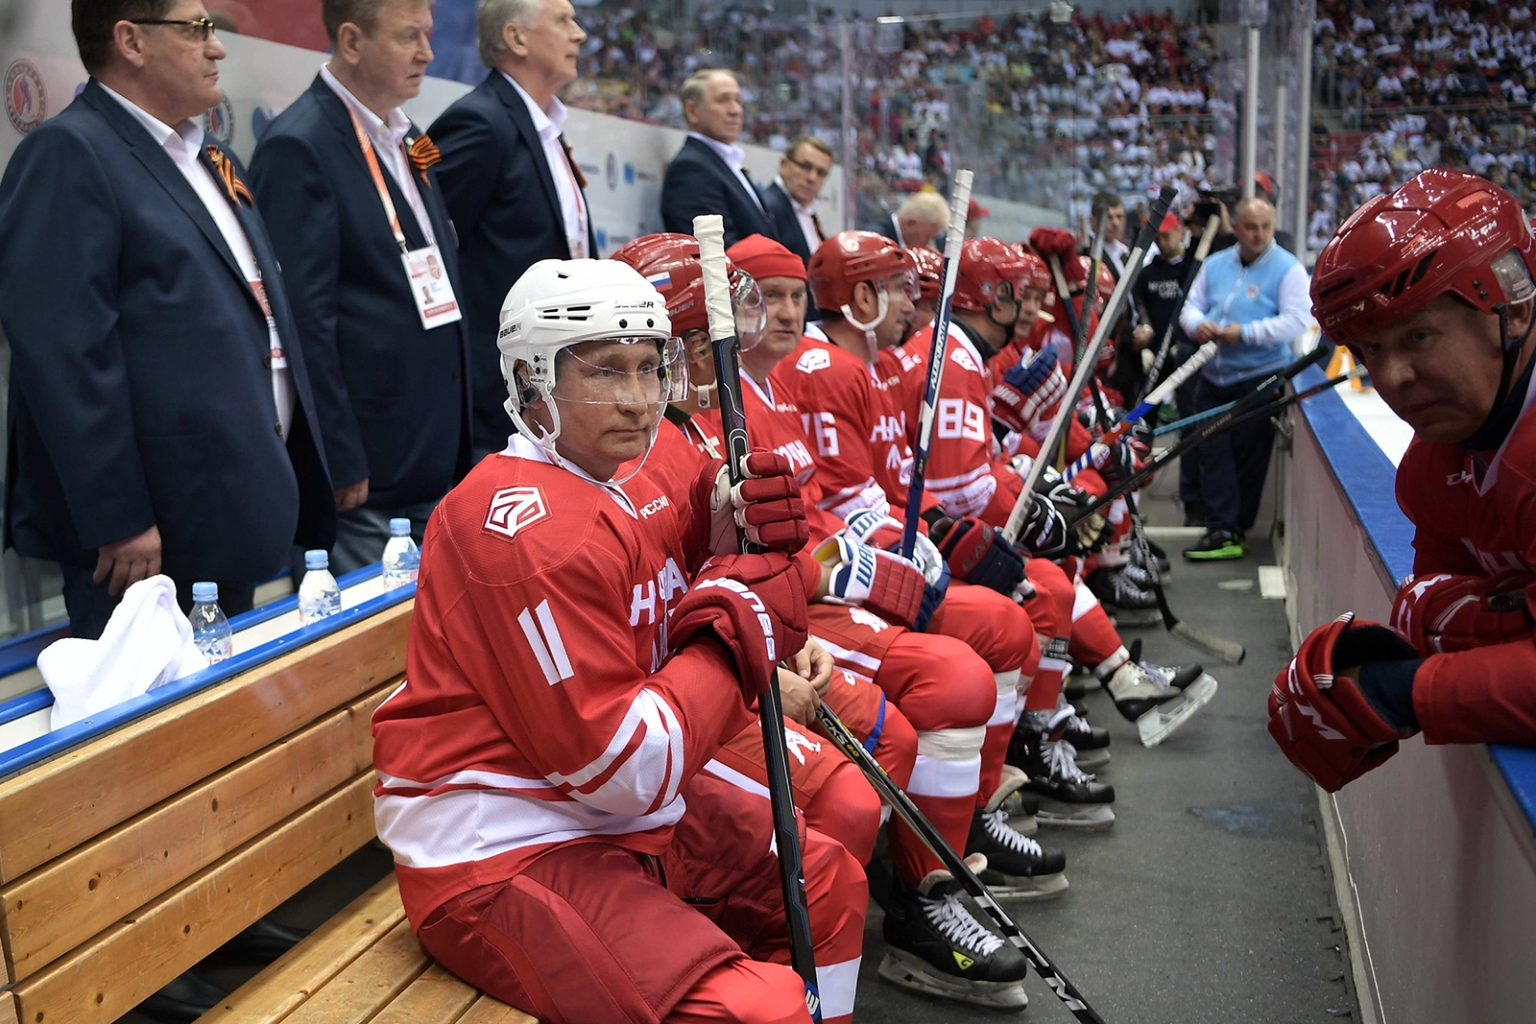 Russian President Vladimir Putin takes part in a Night Ice Hockey League gala game in Sochi on May 10. ALEXEY NIKOLSKY/AFP/Getty Images